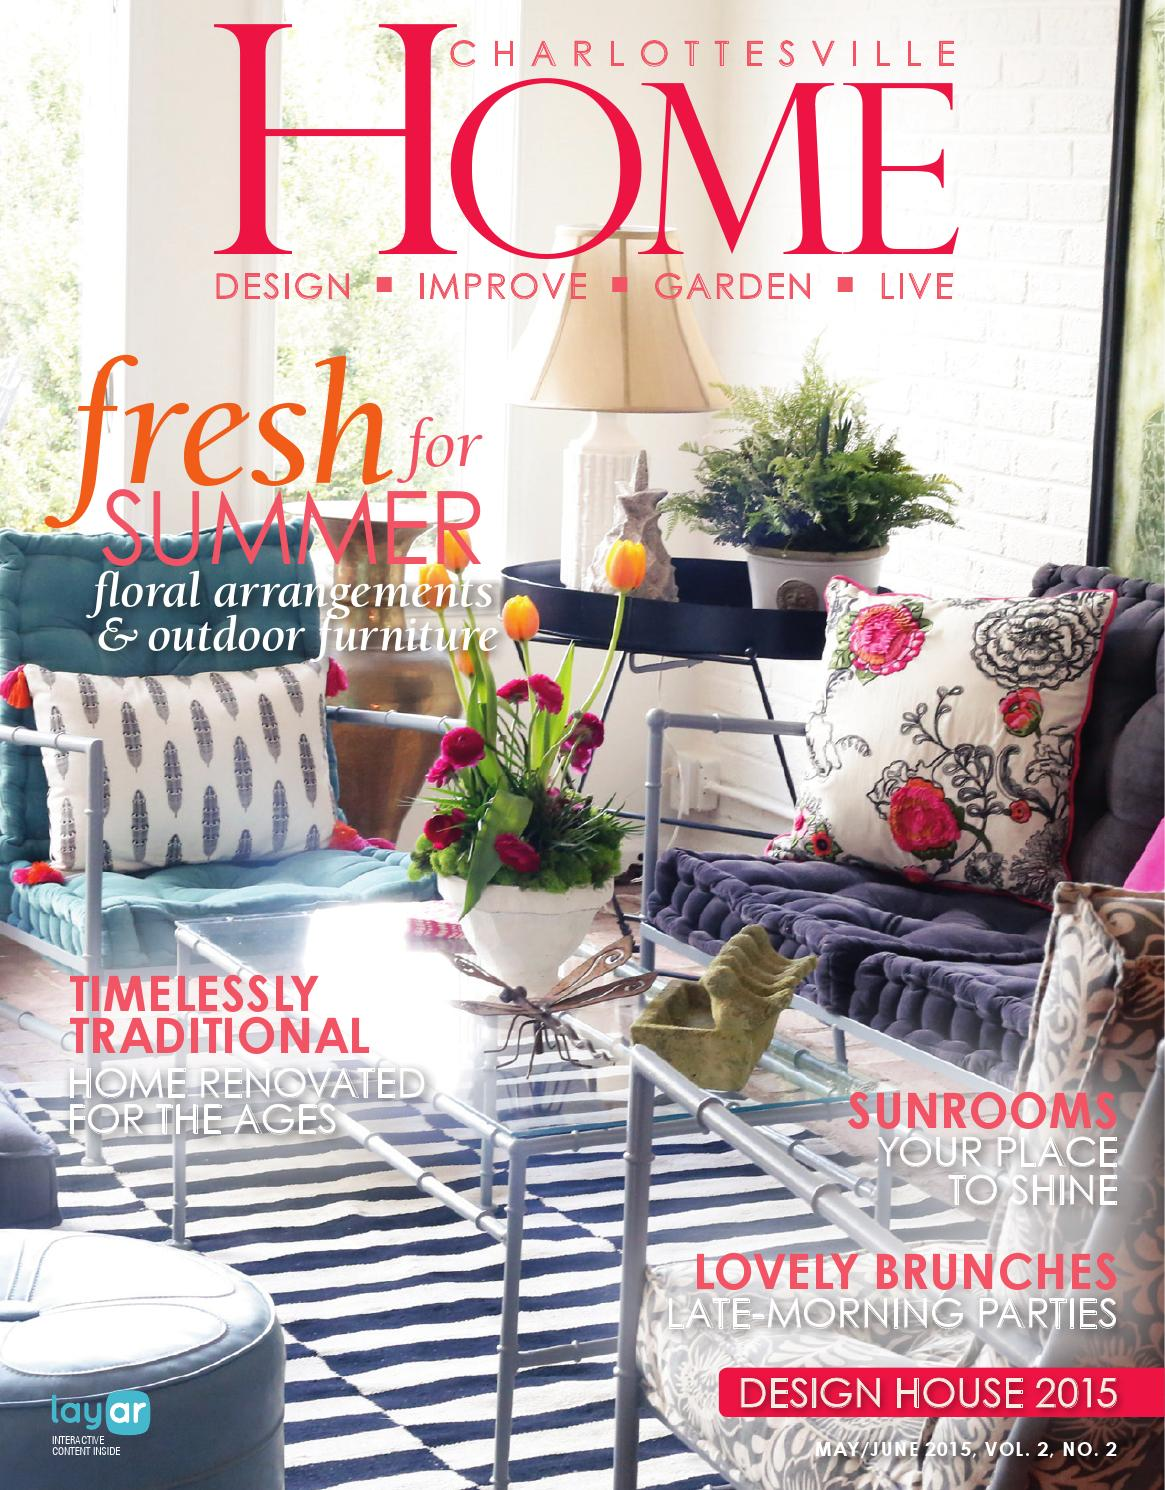 charlottesville home magazine by west willow charlottesville home magazine 2016 by west willow publishing group issuu